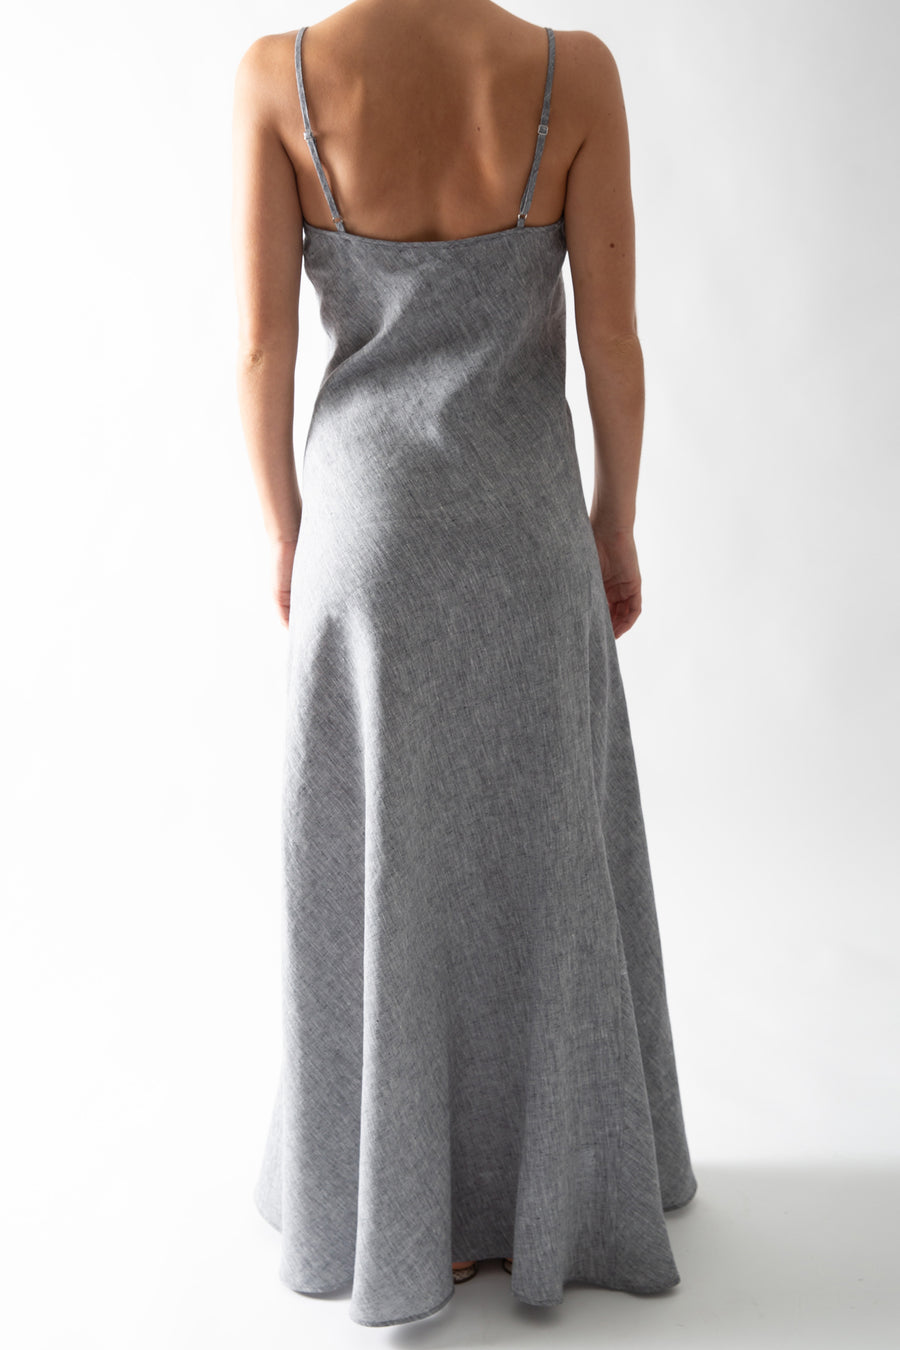 This is a photo of the back of a woman from the neck down. She is wearing the gray chambray slip dress. The photo highlights the adjustable slider straps on the dress.